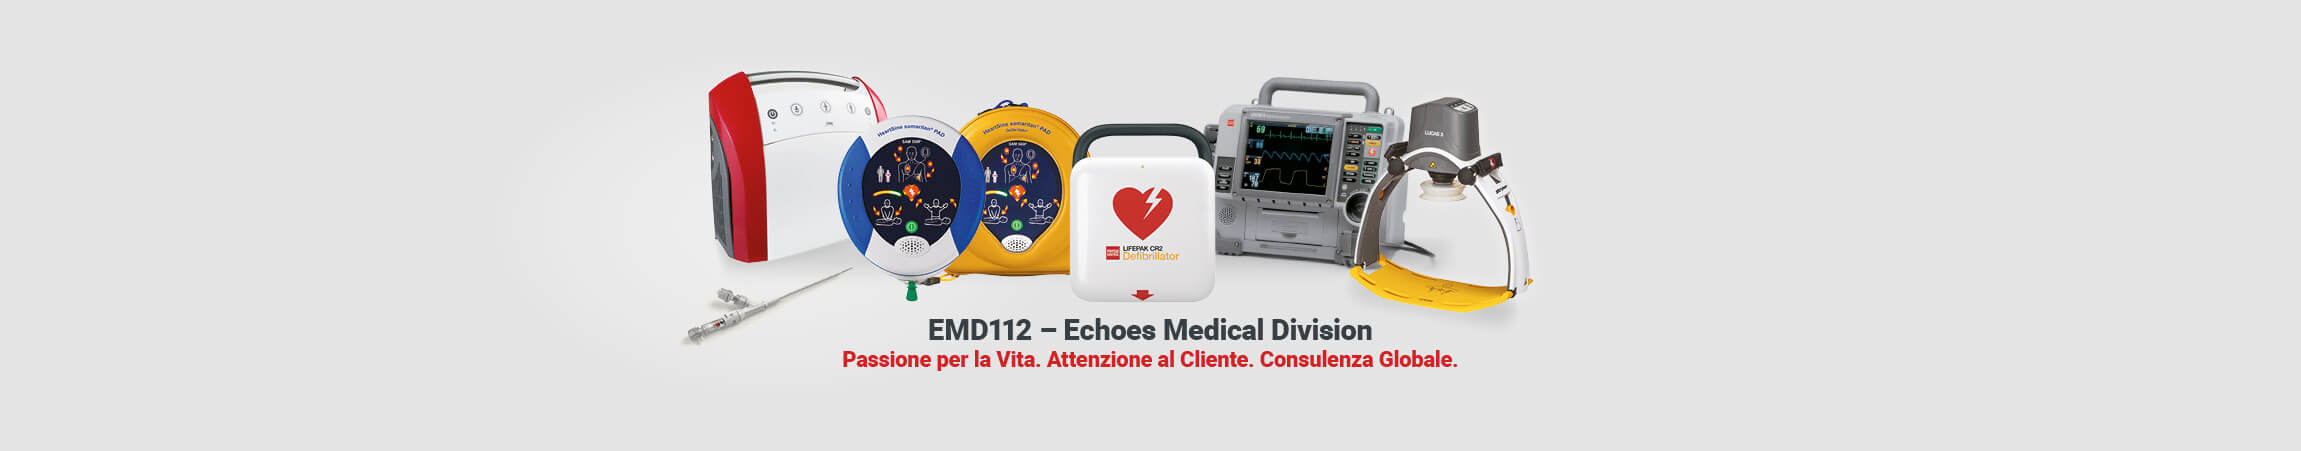 Coefficiente di sicurezza - Defibrillatori DAE HeartSine